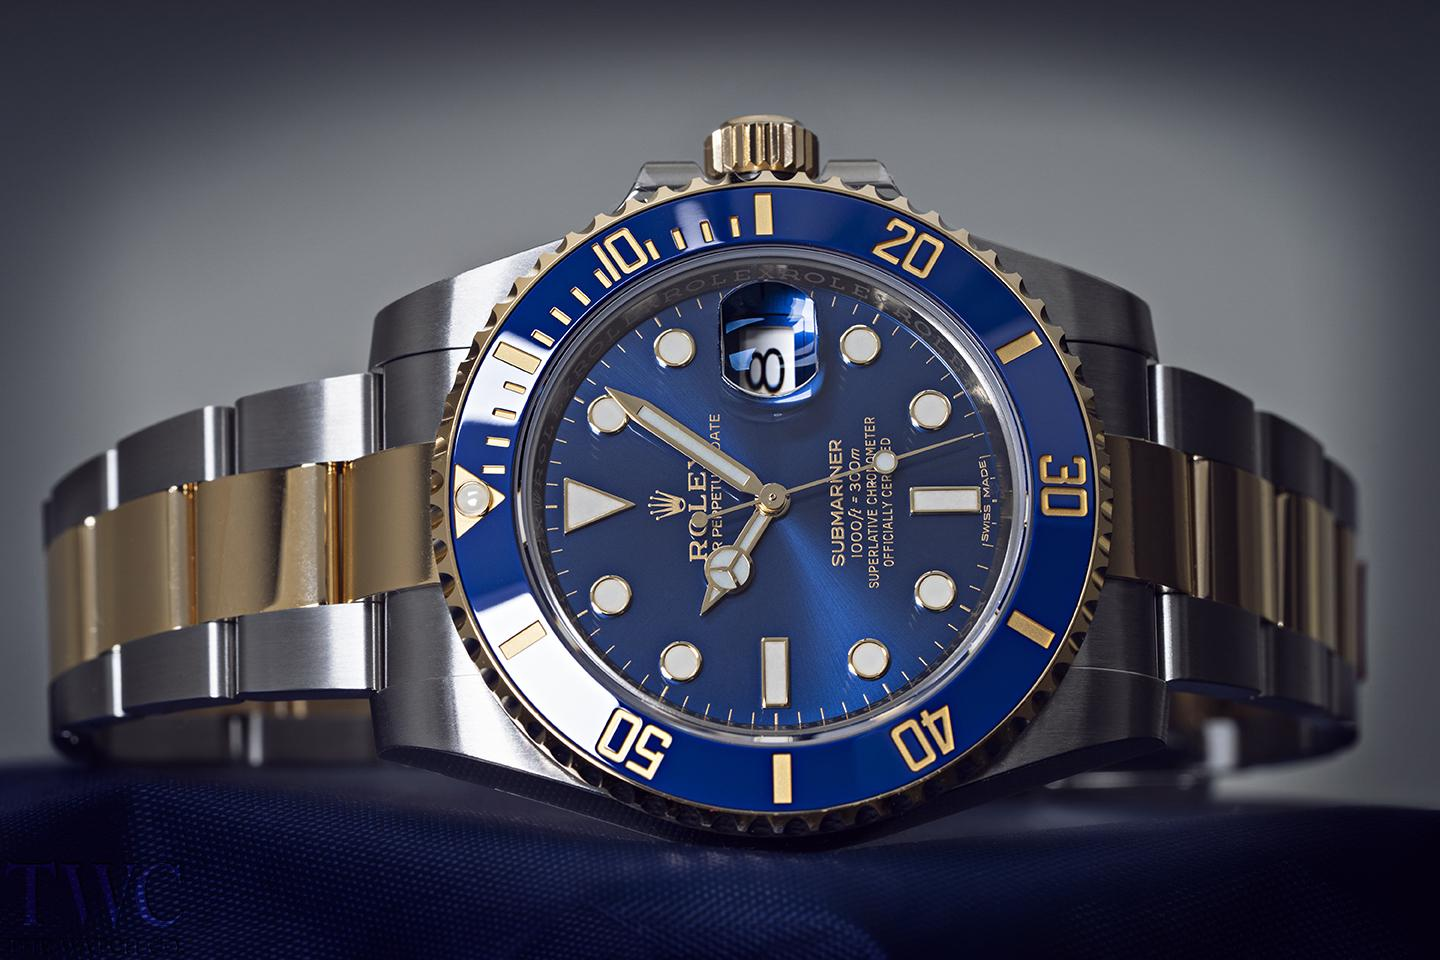 Rolex Submariner: Your Must Have Dive Watch